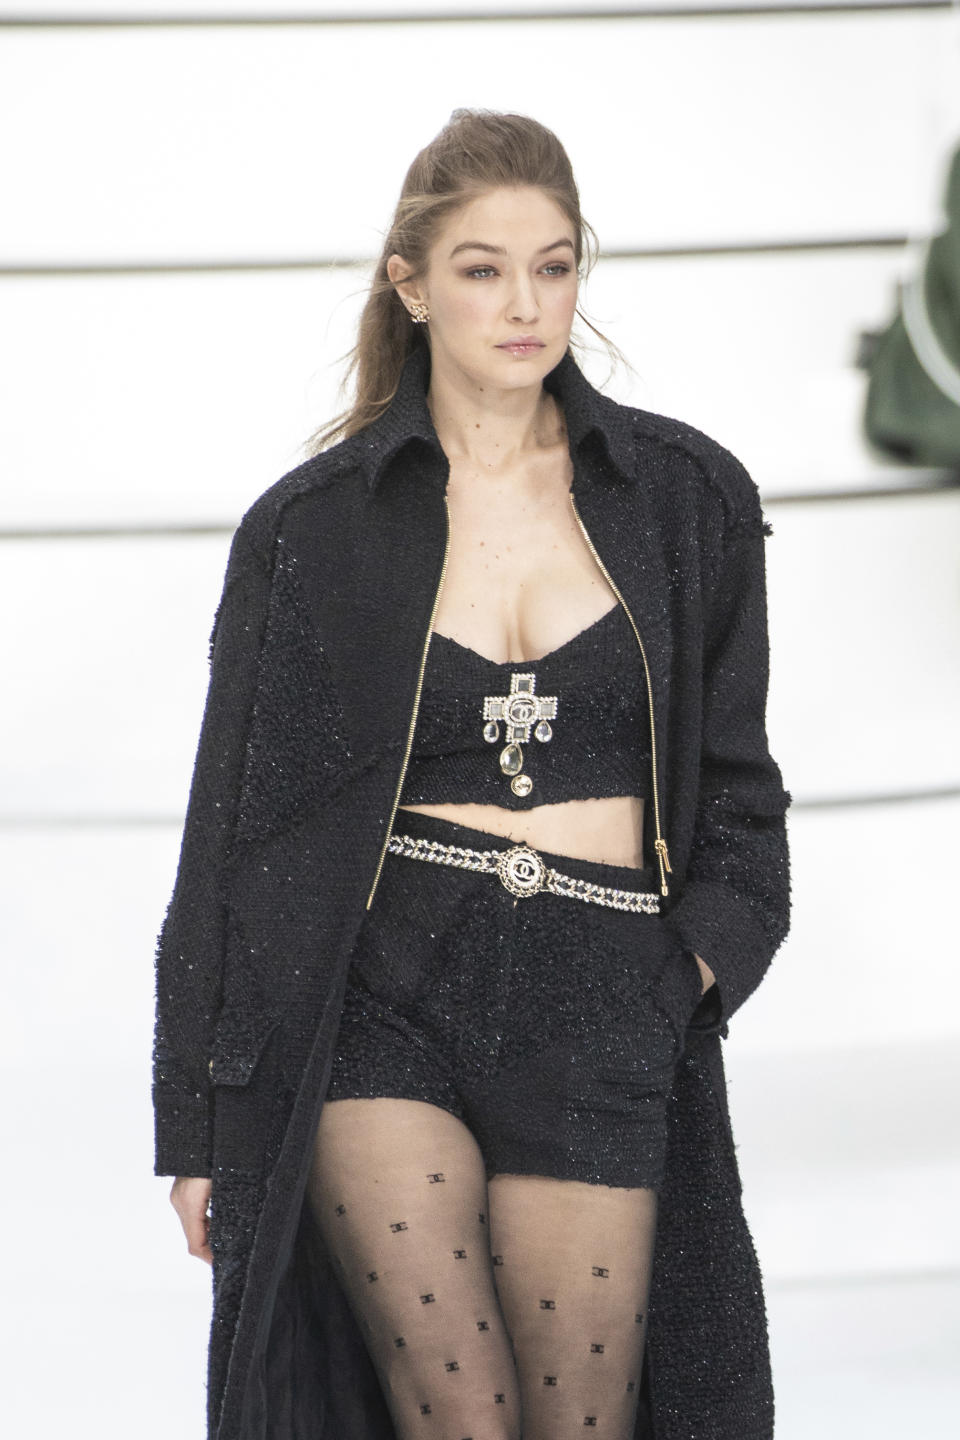 Model Gigi Hadid wears a creation for the Chanel fashion collection during Women's fashion week Fall/Winter 2020/21 presented in Paris, Tuesday, March 3, 2020. (Photo by Vianney Le Caer/Invision/AP)